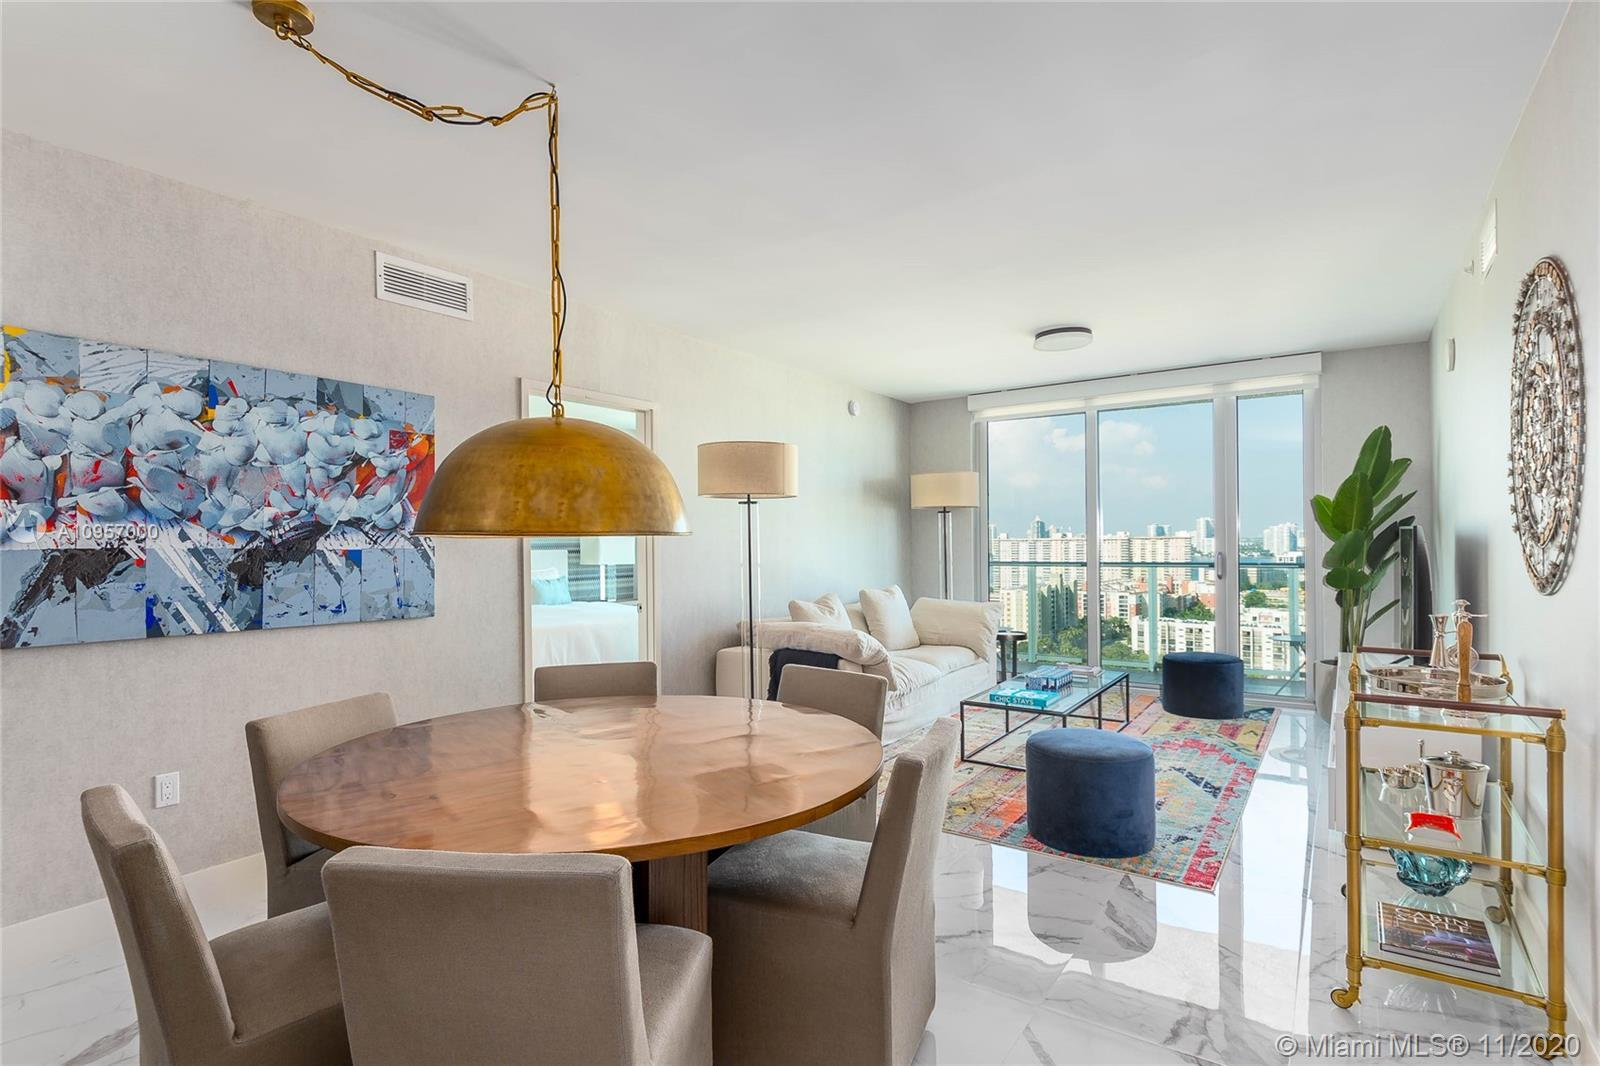 Turn-key Apartment at Parque Towers!! Incredibly finished and furnished by professional interior des